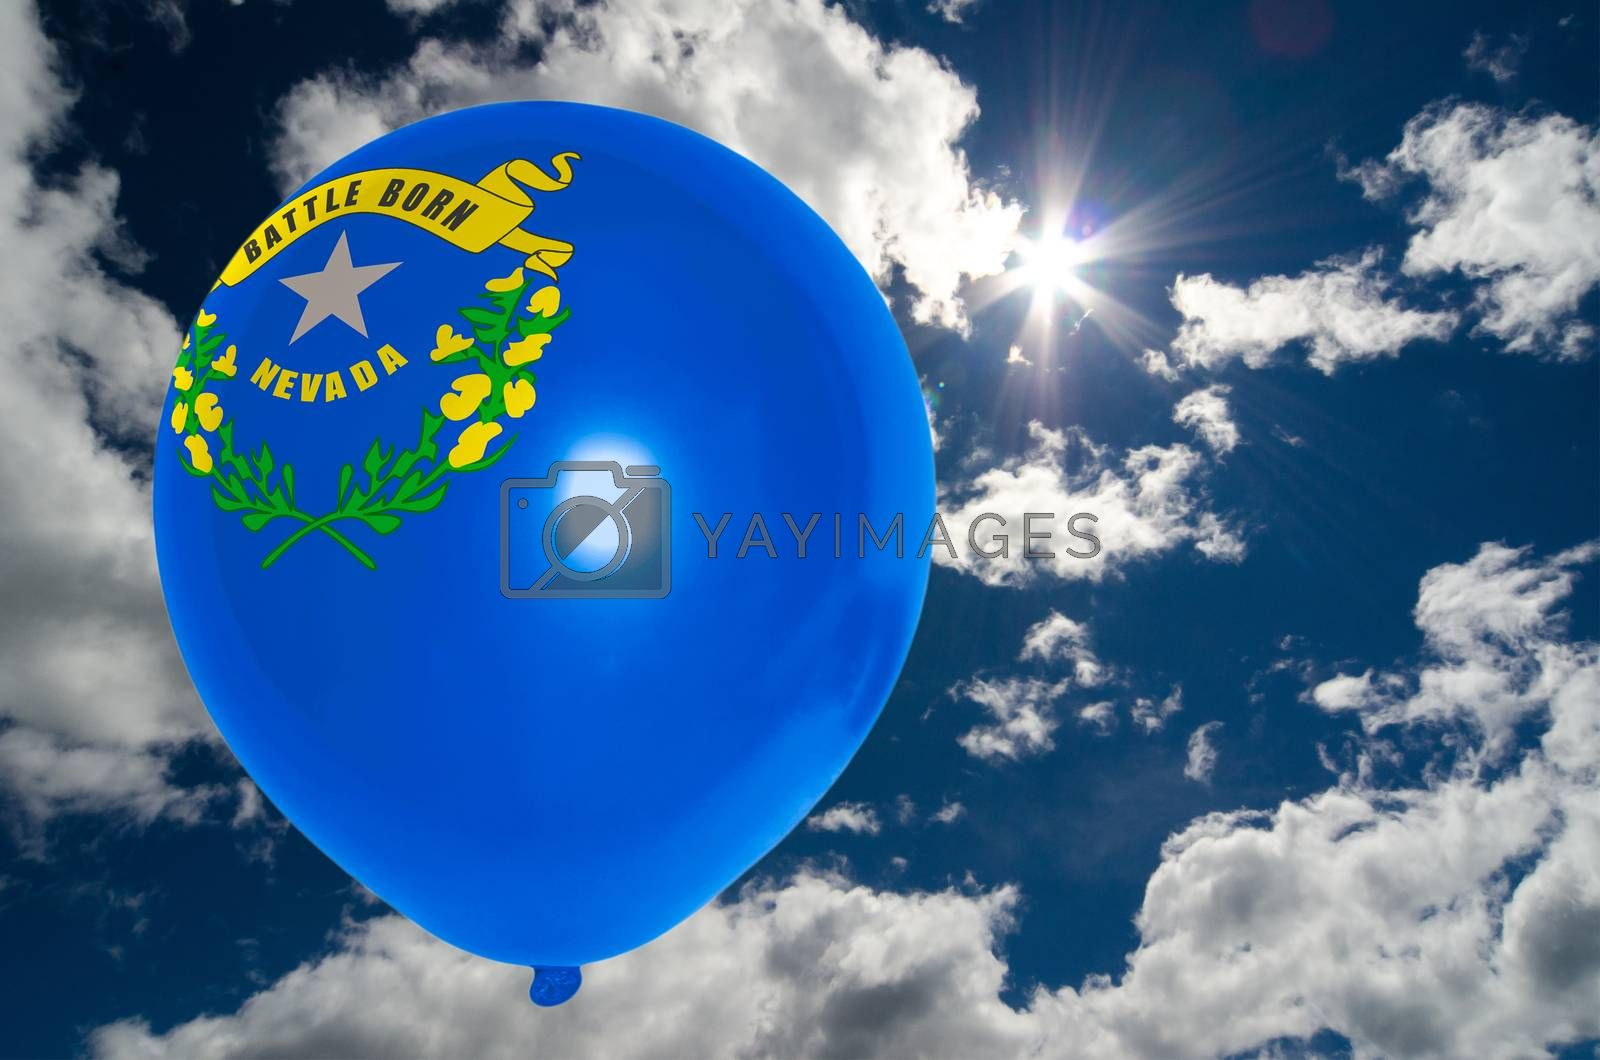 balloon in colors of nevada flag flying on blue sky